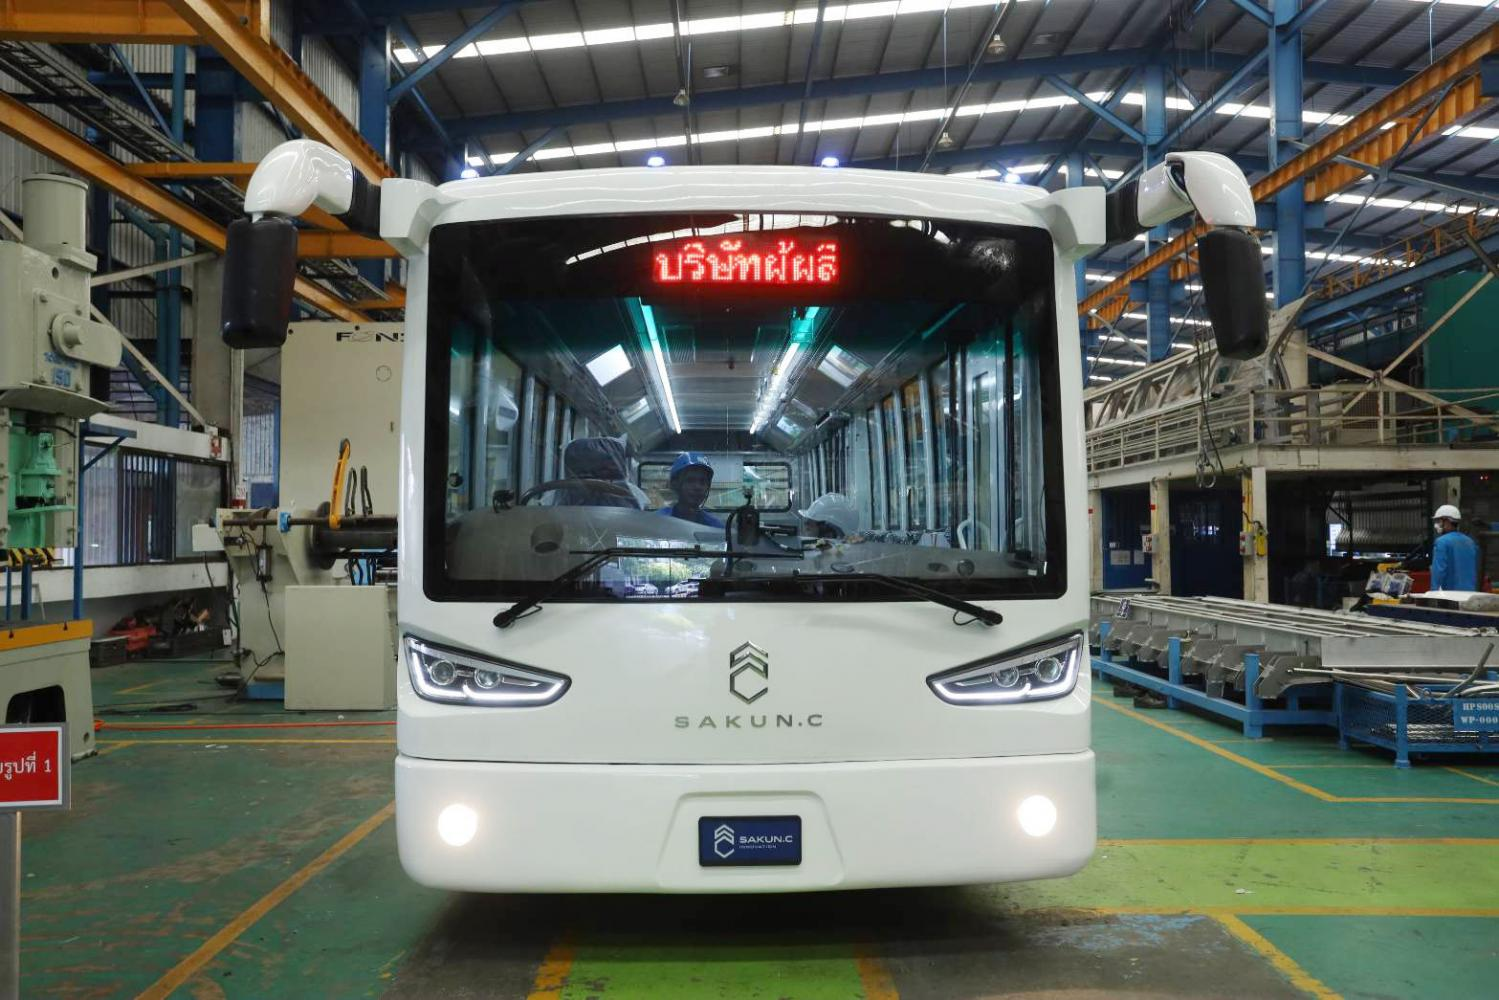 Sakun C Innovation wants to initially supply an aluminium body to BMTA as the company has a plan to upgrade its ageing buses.